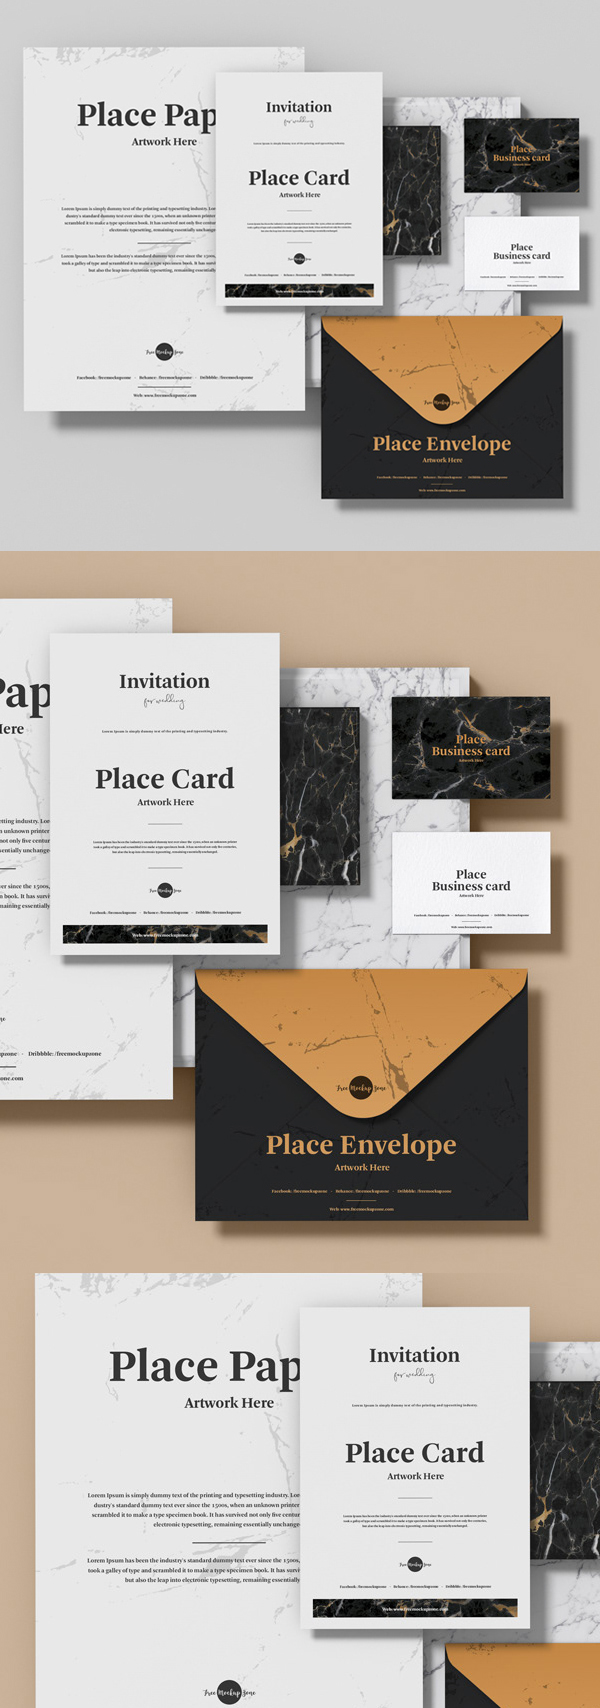 Free Stationery PSD Mockup Template Design